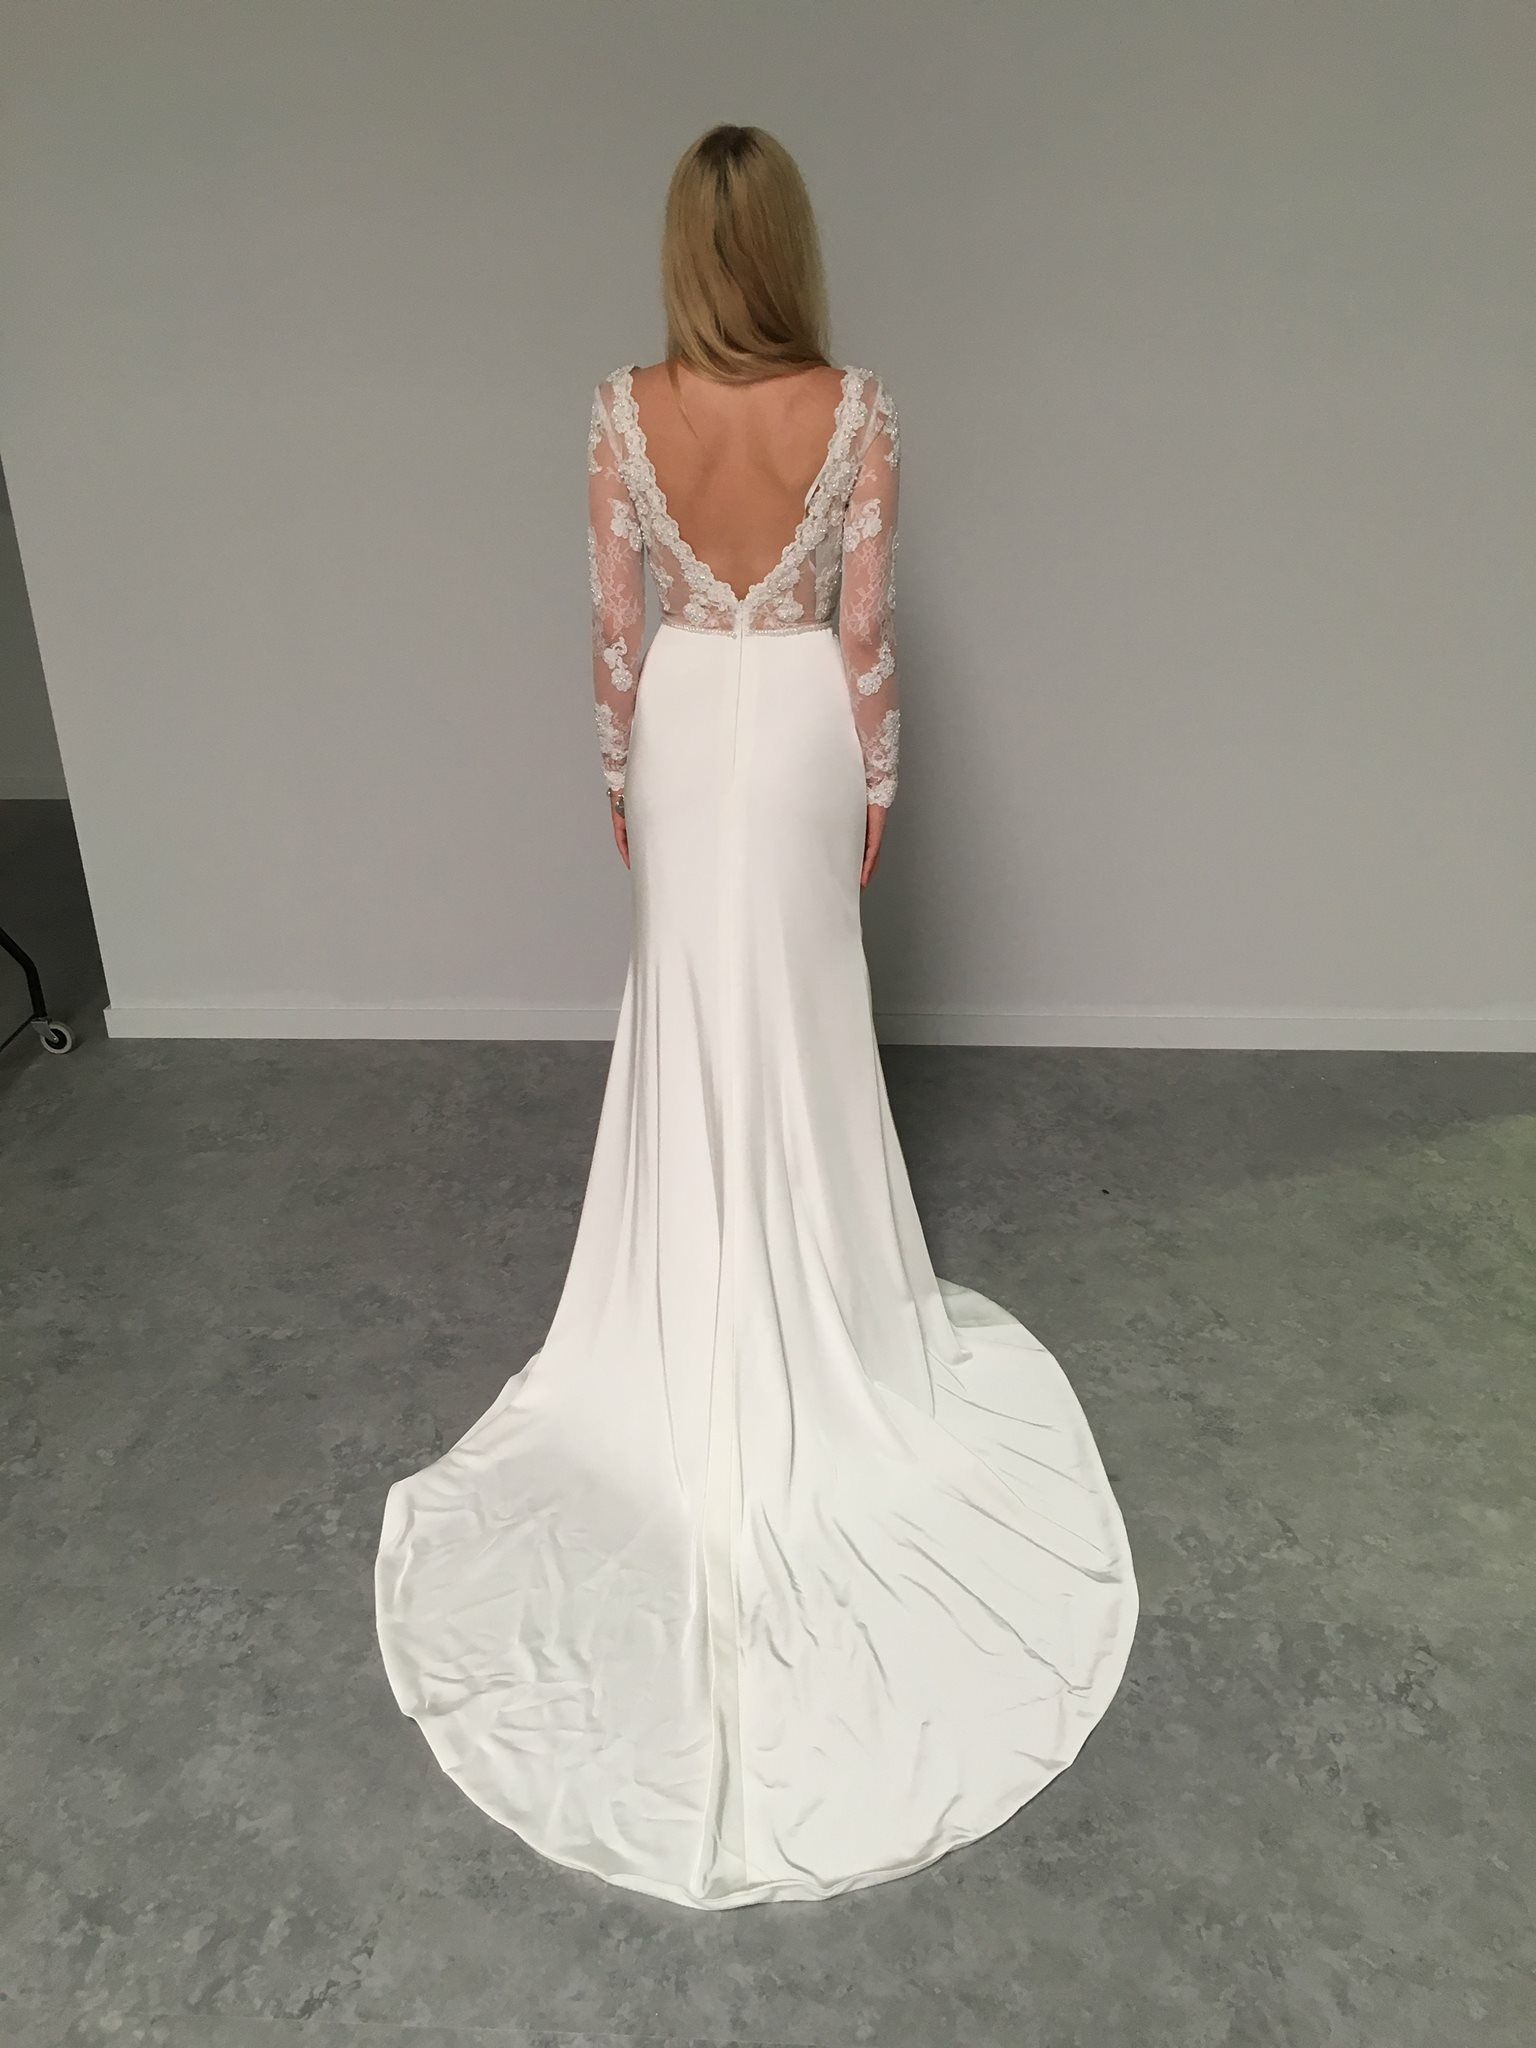 Wedding dresses for 2nd marriage  Pin by Olivia Lauren Wycoff on marry me  Pinterest  Wedding dress